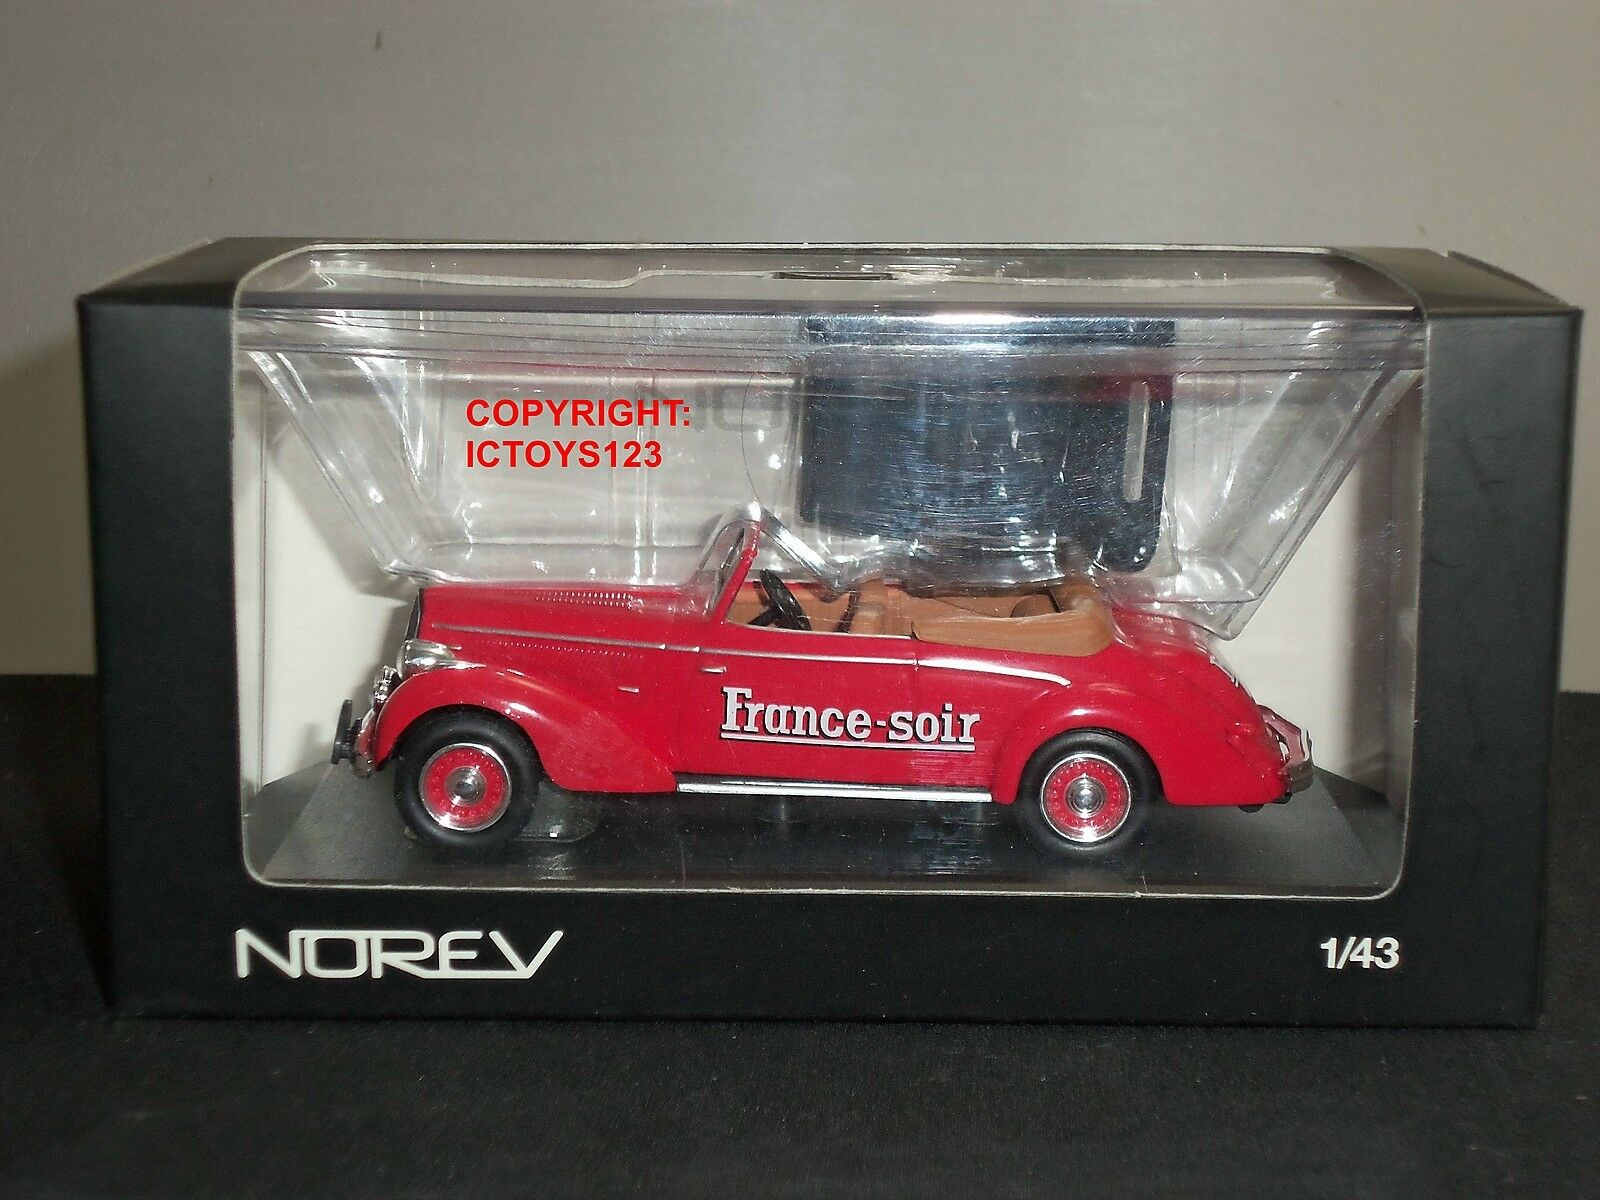 NOREV 590009 HOTCHKISS FRANCE SOIR RED DIECAST MODEL CAR